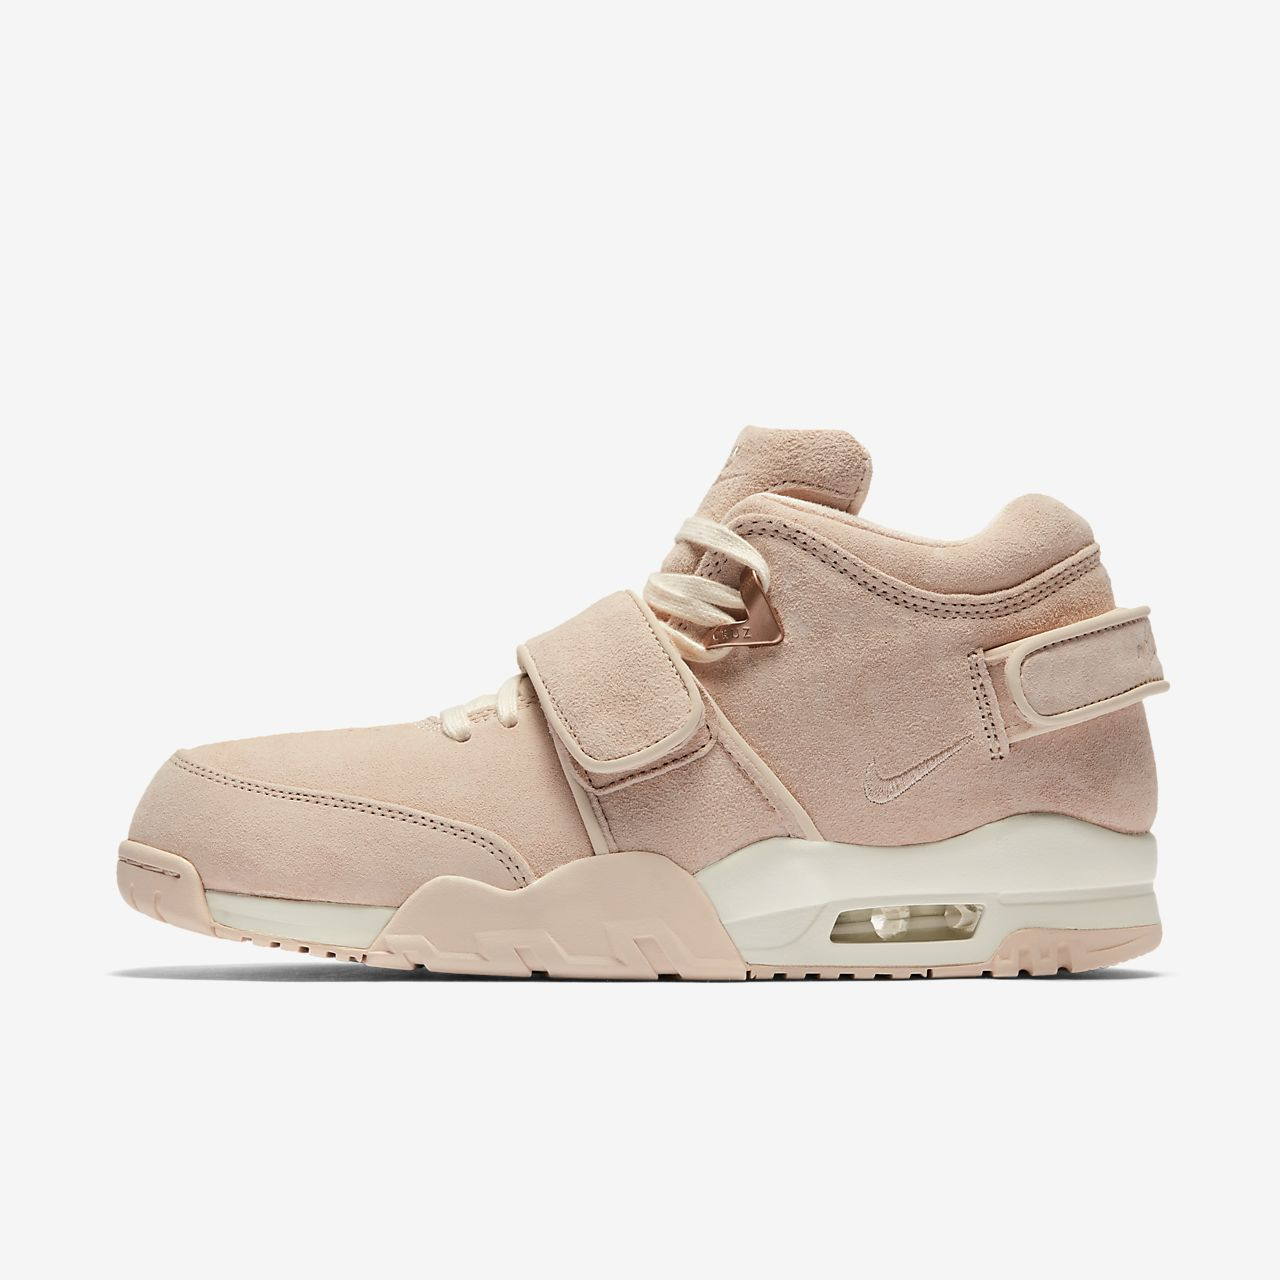 quality design 9c4bb d0a07 ... Nike Air Trainer QS (Victor Cruz) Men s Shoe